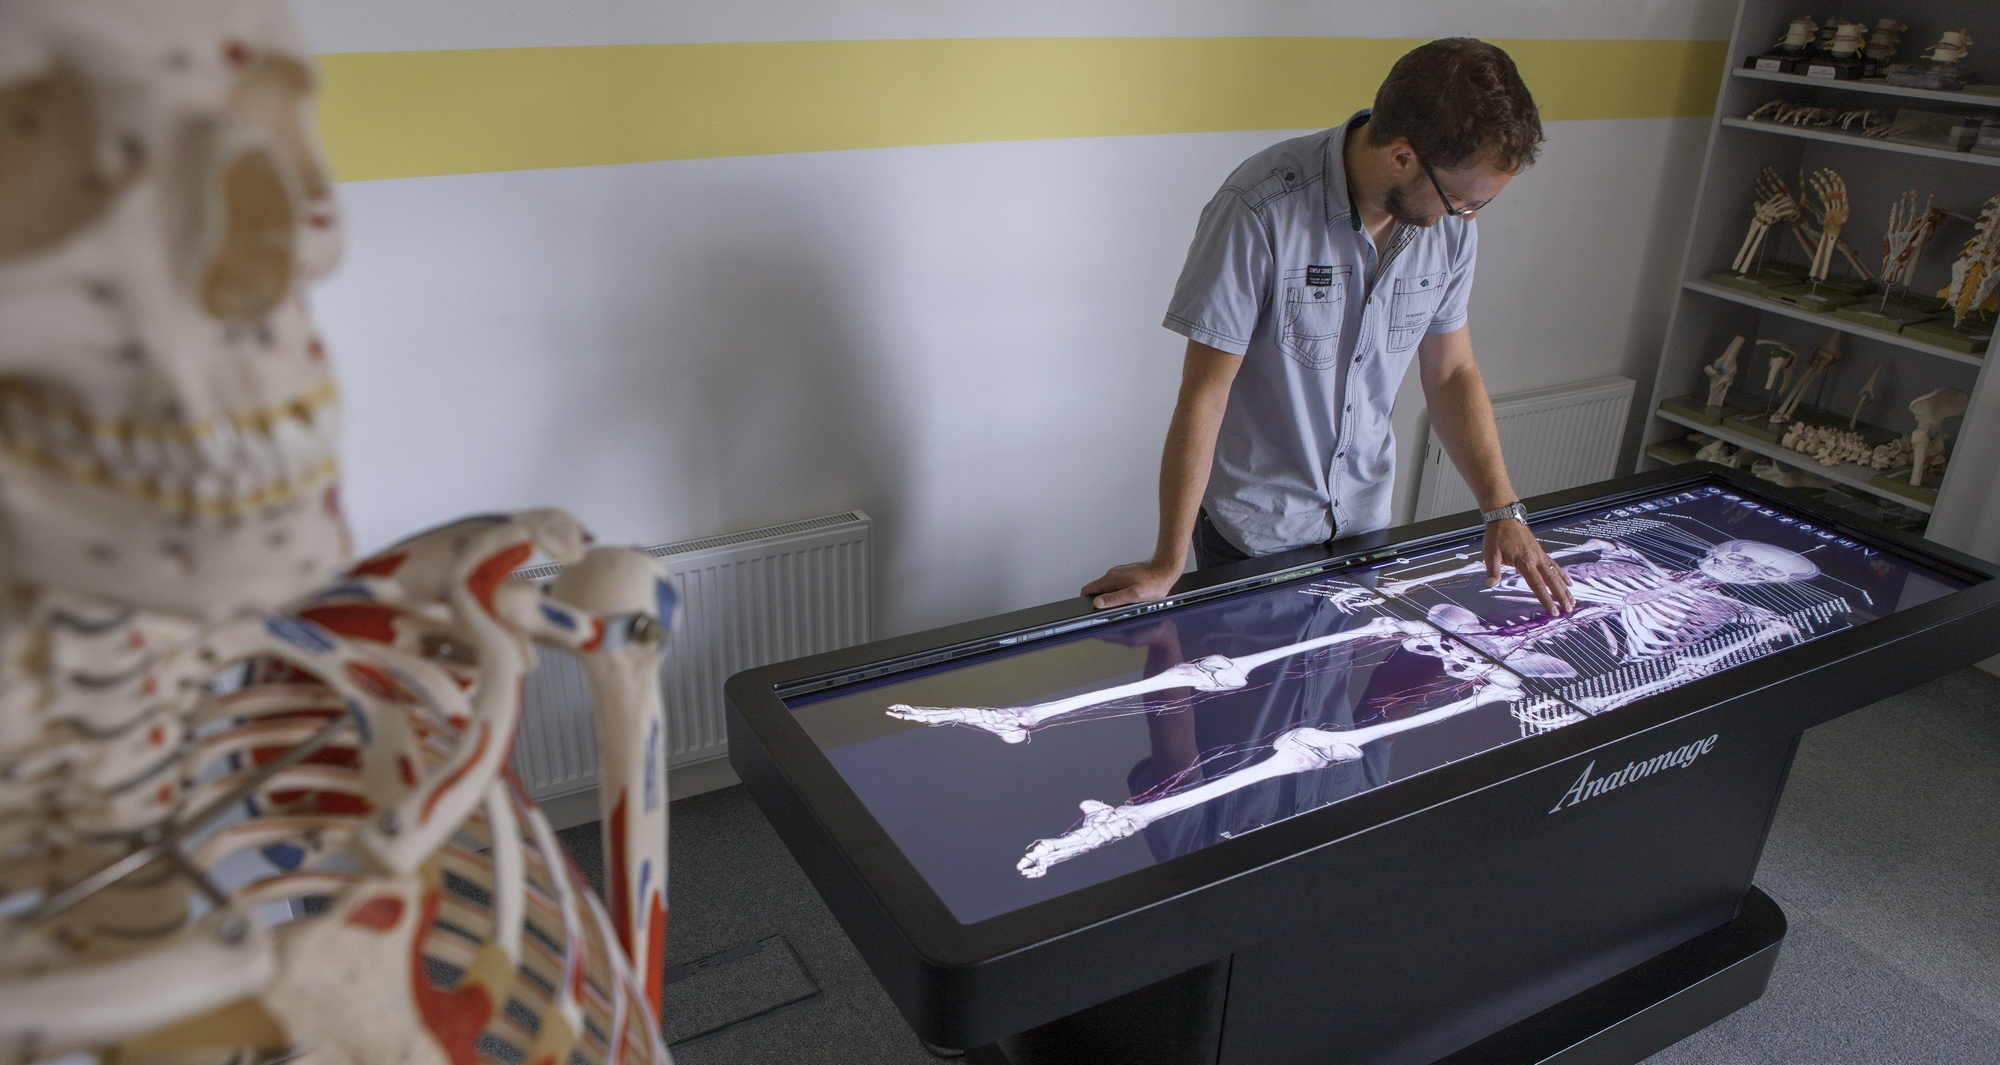 Virtual Dissection Table A First For Plymouth Medical